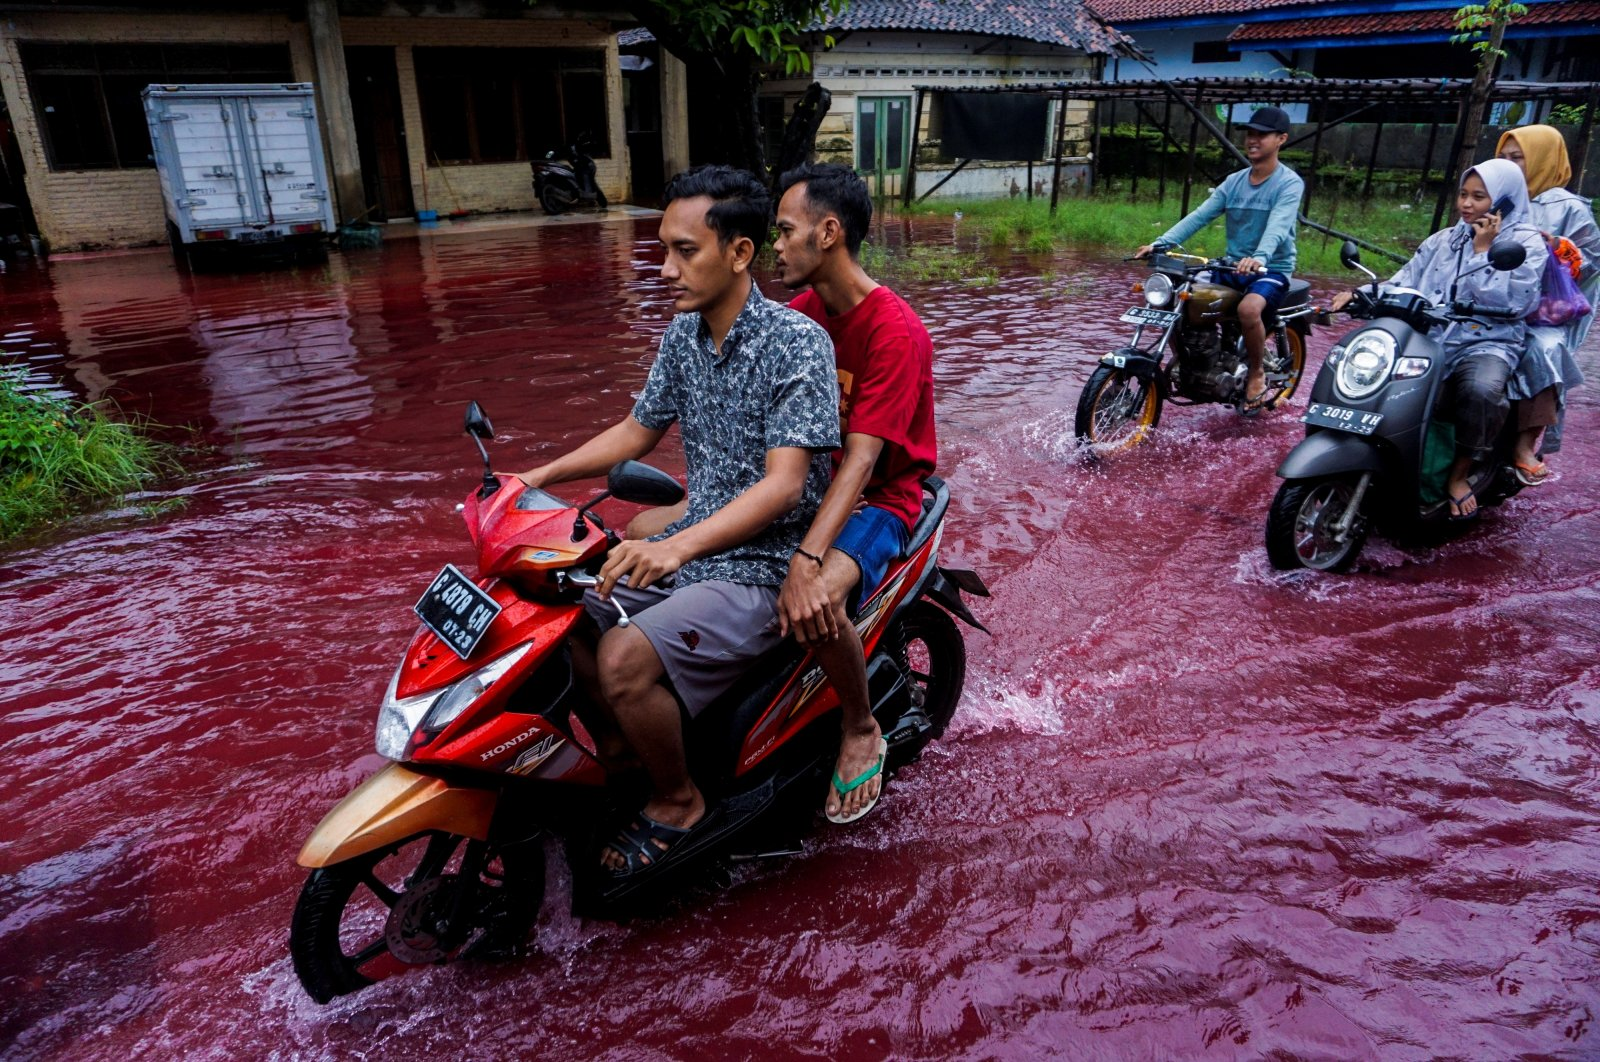 People ride motorbikes through a flooded road with red water due to the dye-waste from cloth factories, in Pekalongan, Central Java province, Indonesia, Feb. 6, 2021. (Reuters Photo)